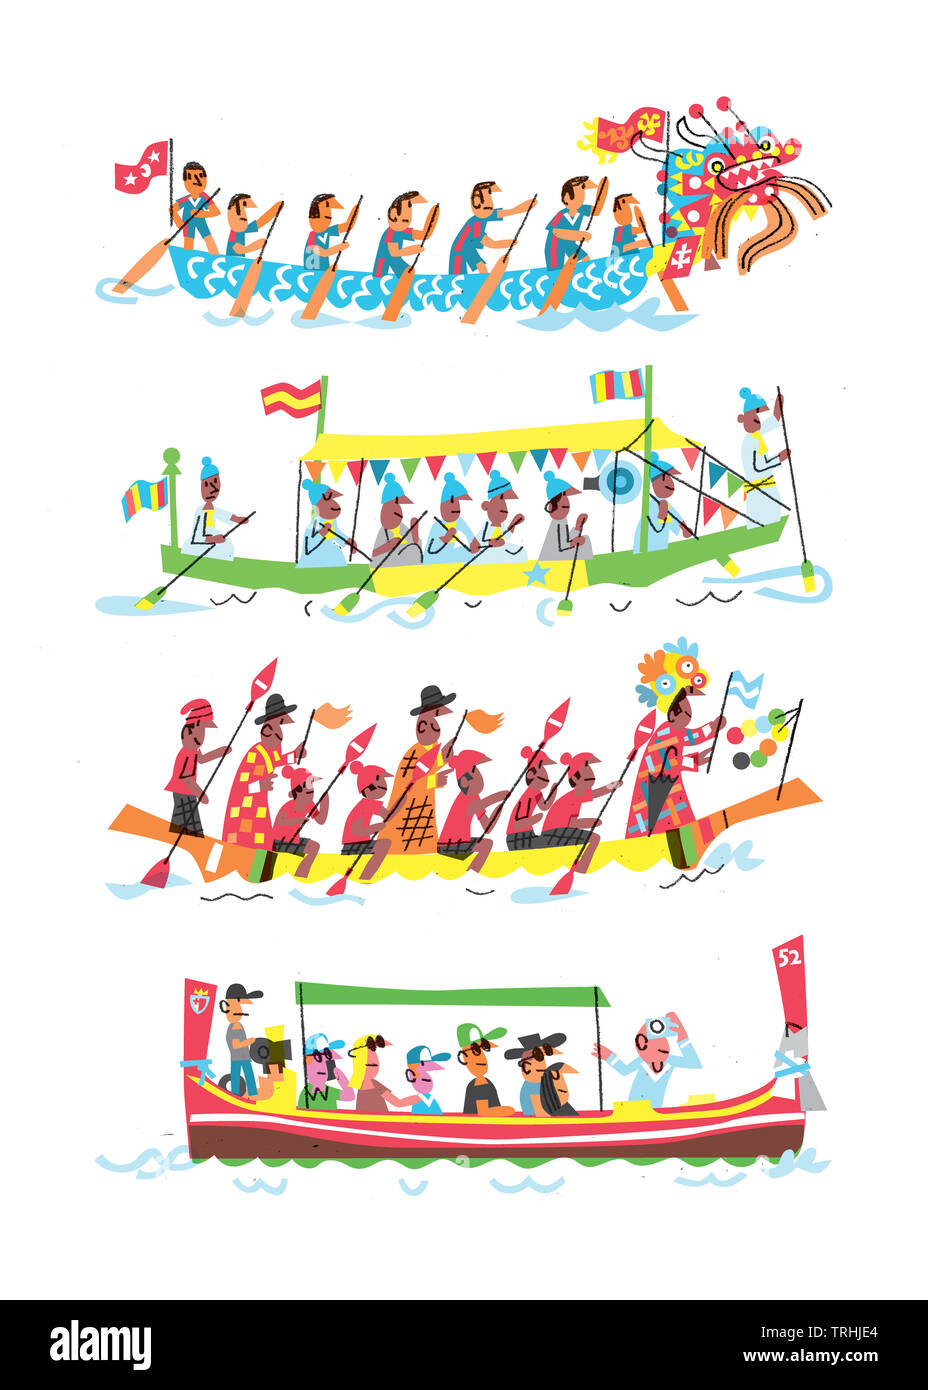 Boats from various parts of world - Stock Image